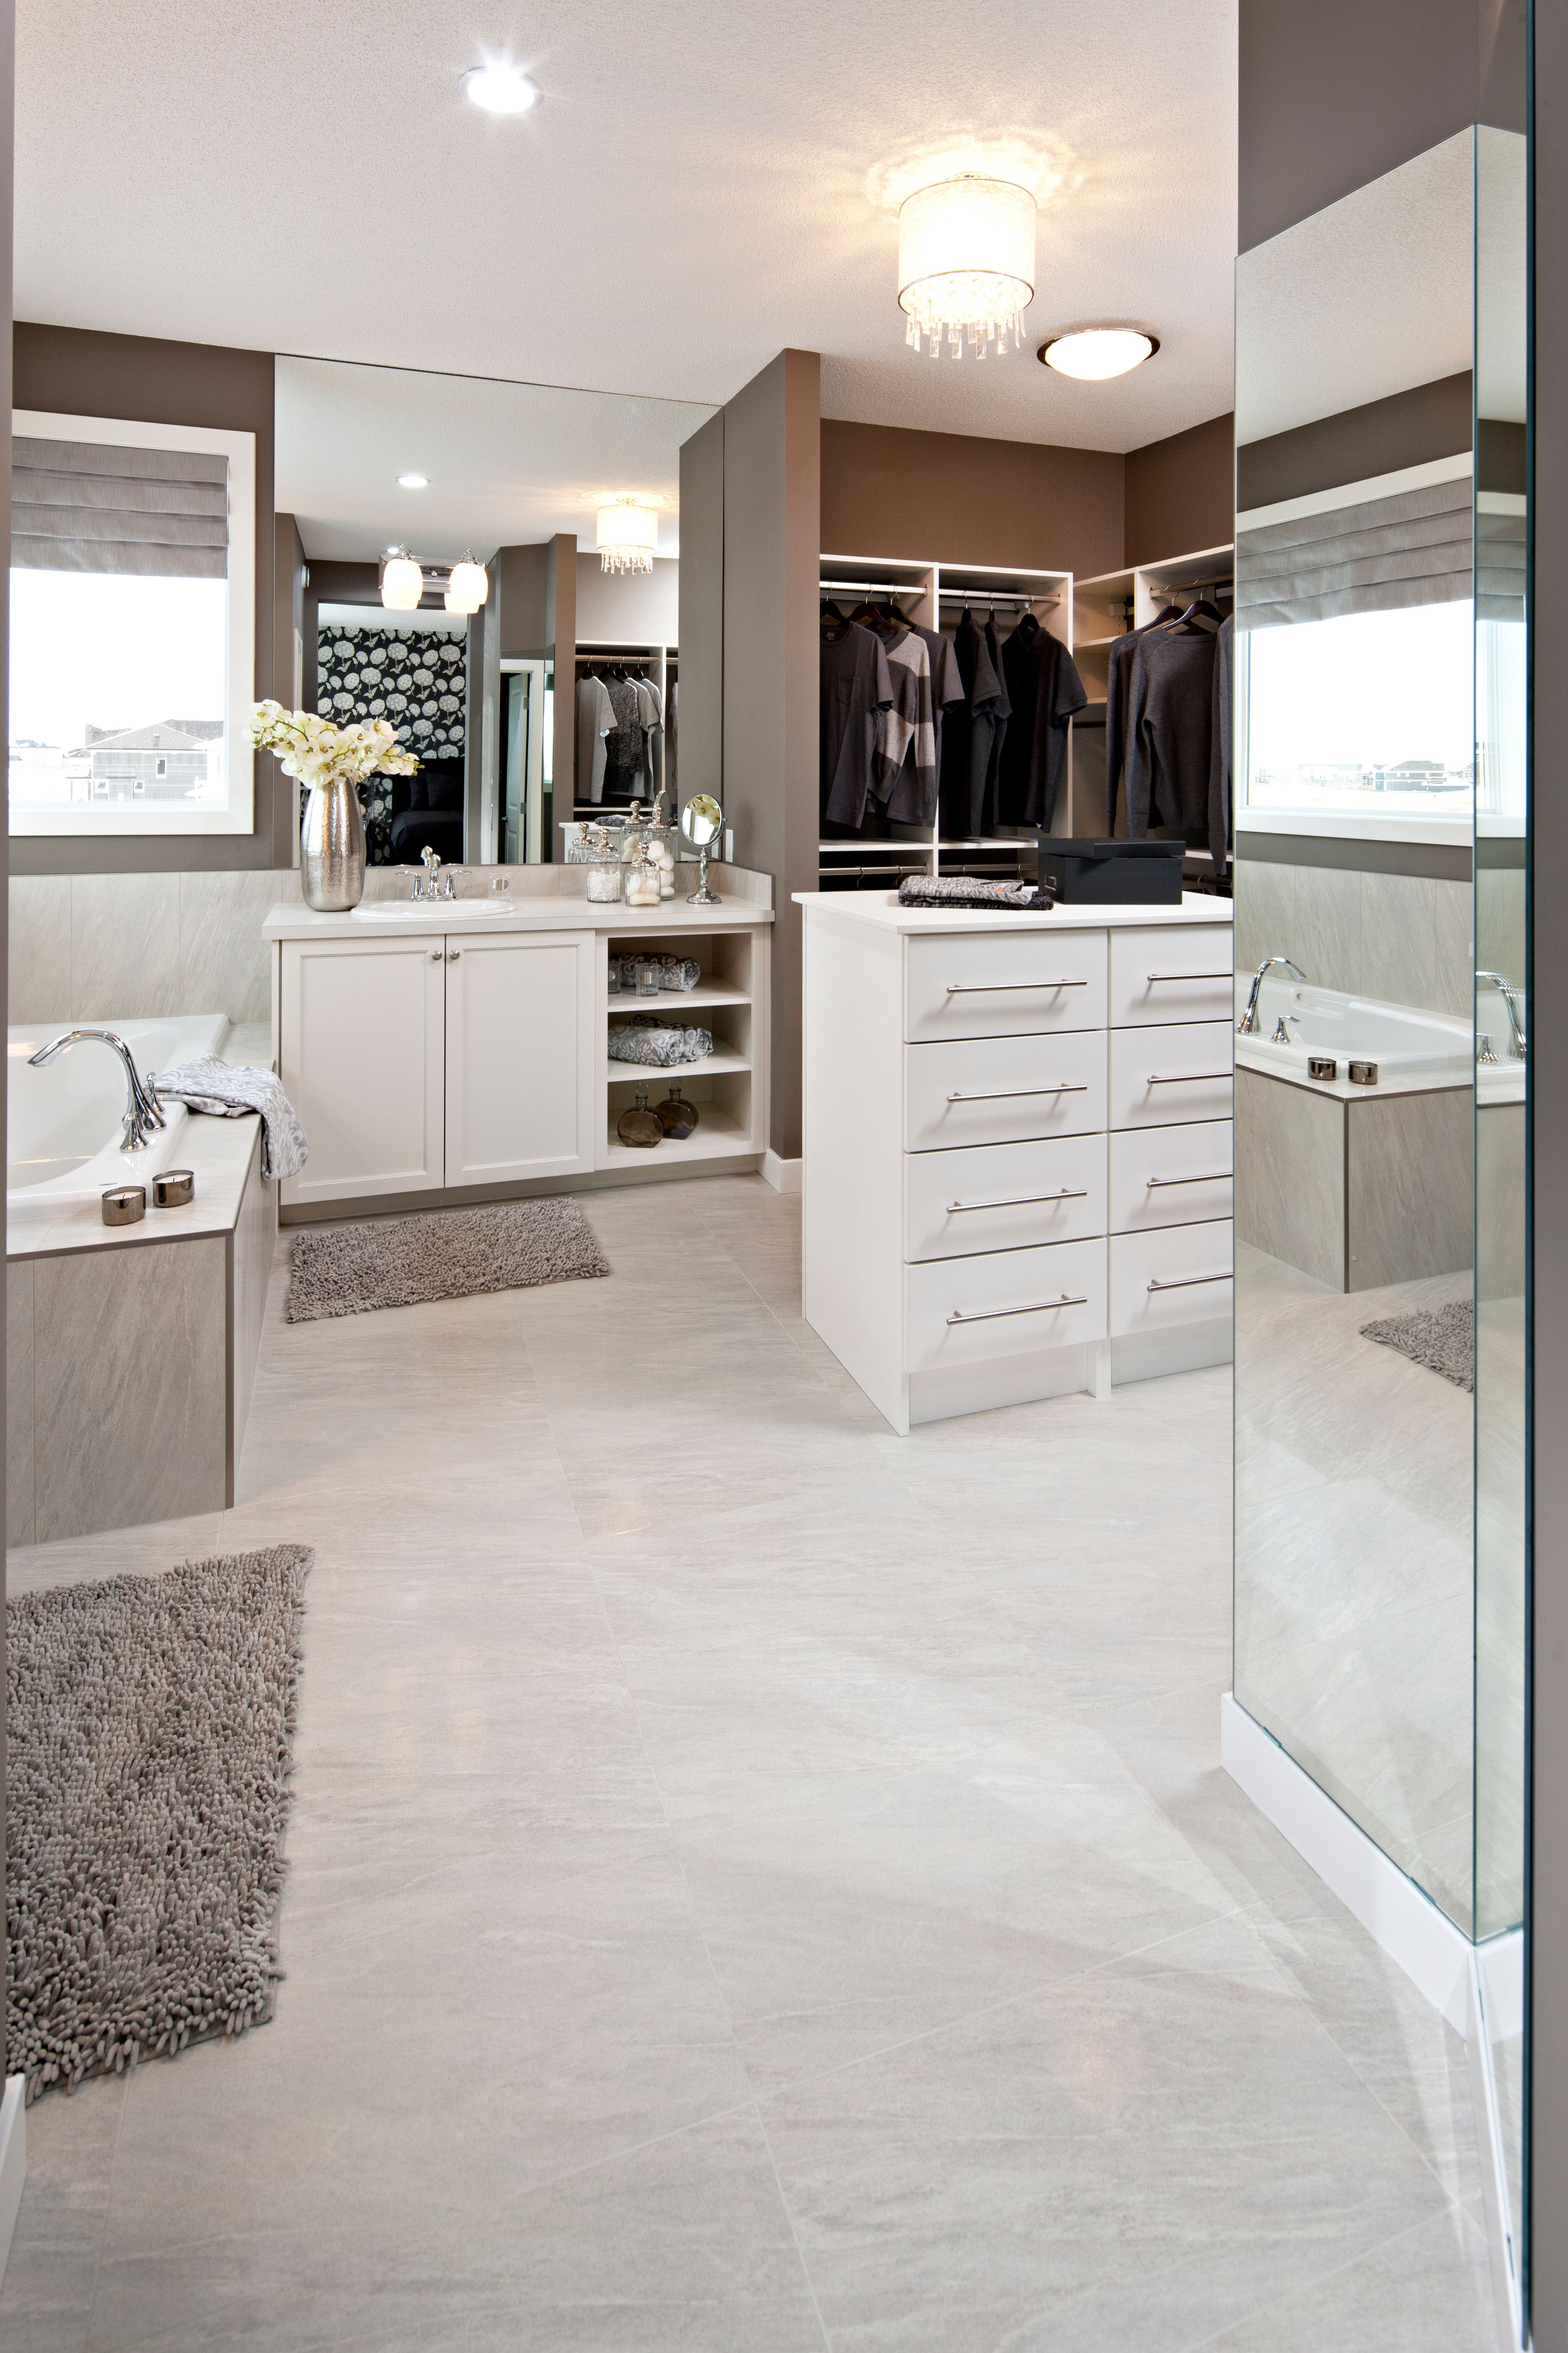 Closet And Bathroom Combined. Great Use Of Space!